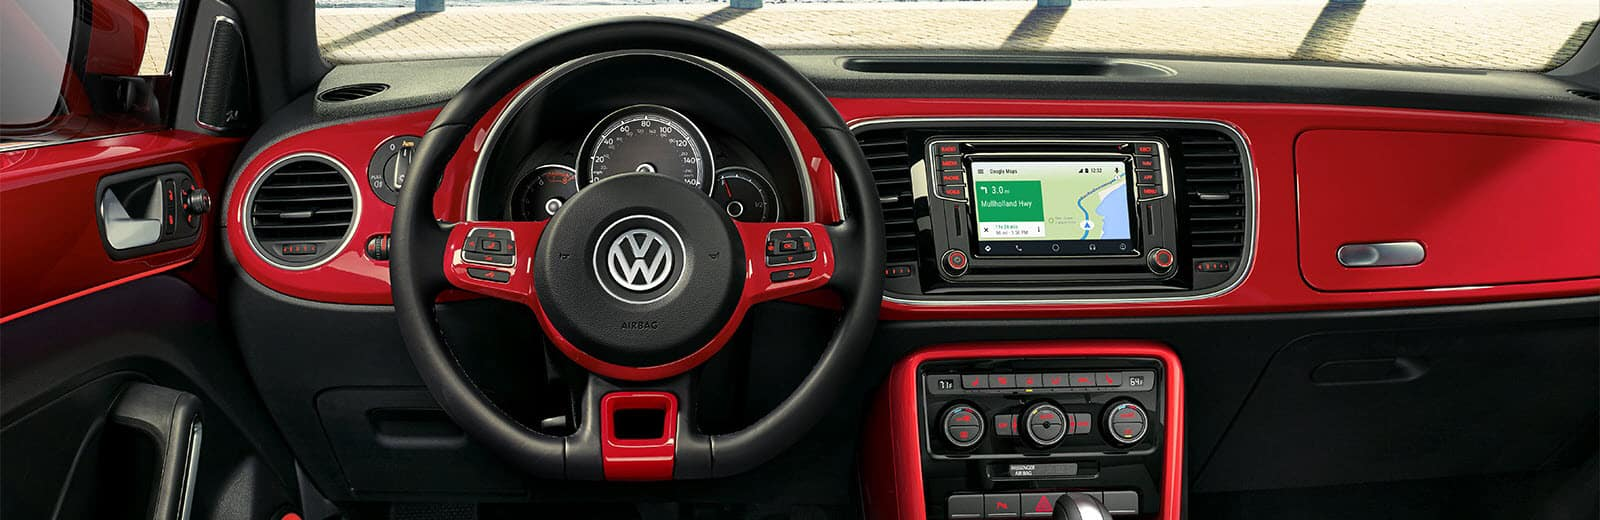 2019 Volkswagen Beetle Interior Technology